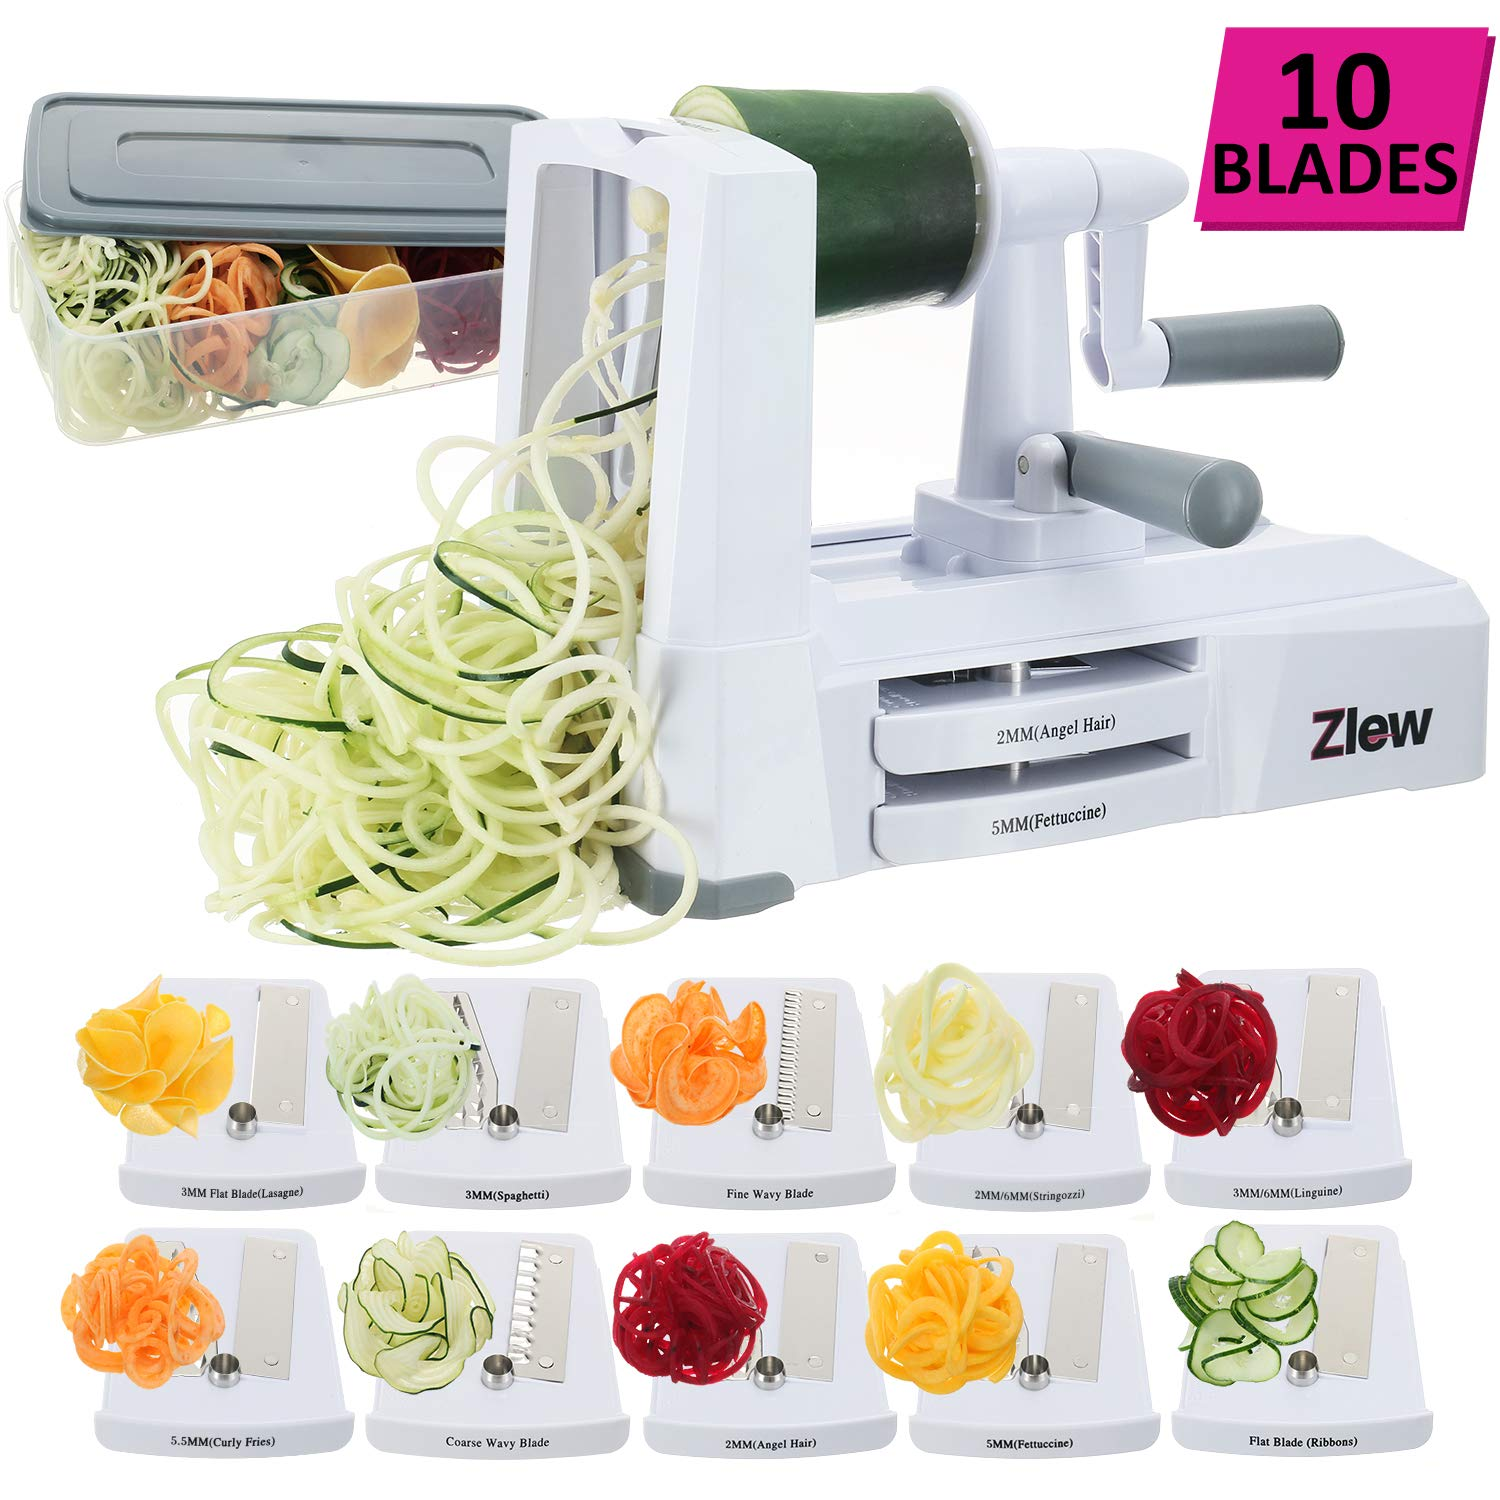 10-Blade Spiralizer Vegetable Slicer Strongest Heaviest Duty Veggie Pasta Spaghetti Maker for Healthy Low Carb/Paleo/Gluten-Free Meals with Blade Caddy, Container, Lid & Exclusive Recipe Book by Zlew by ZLEW